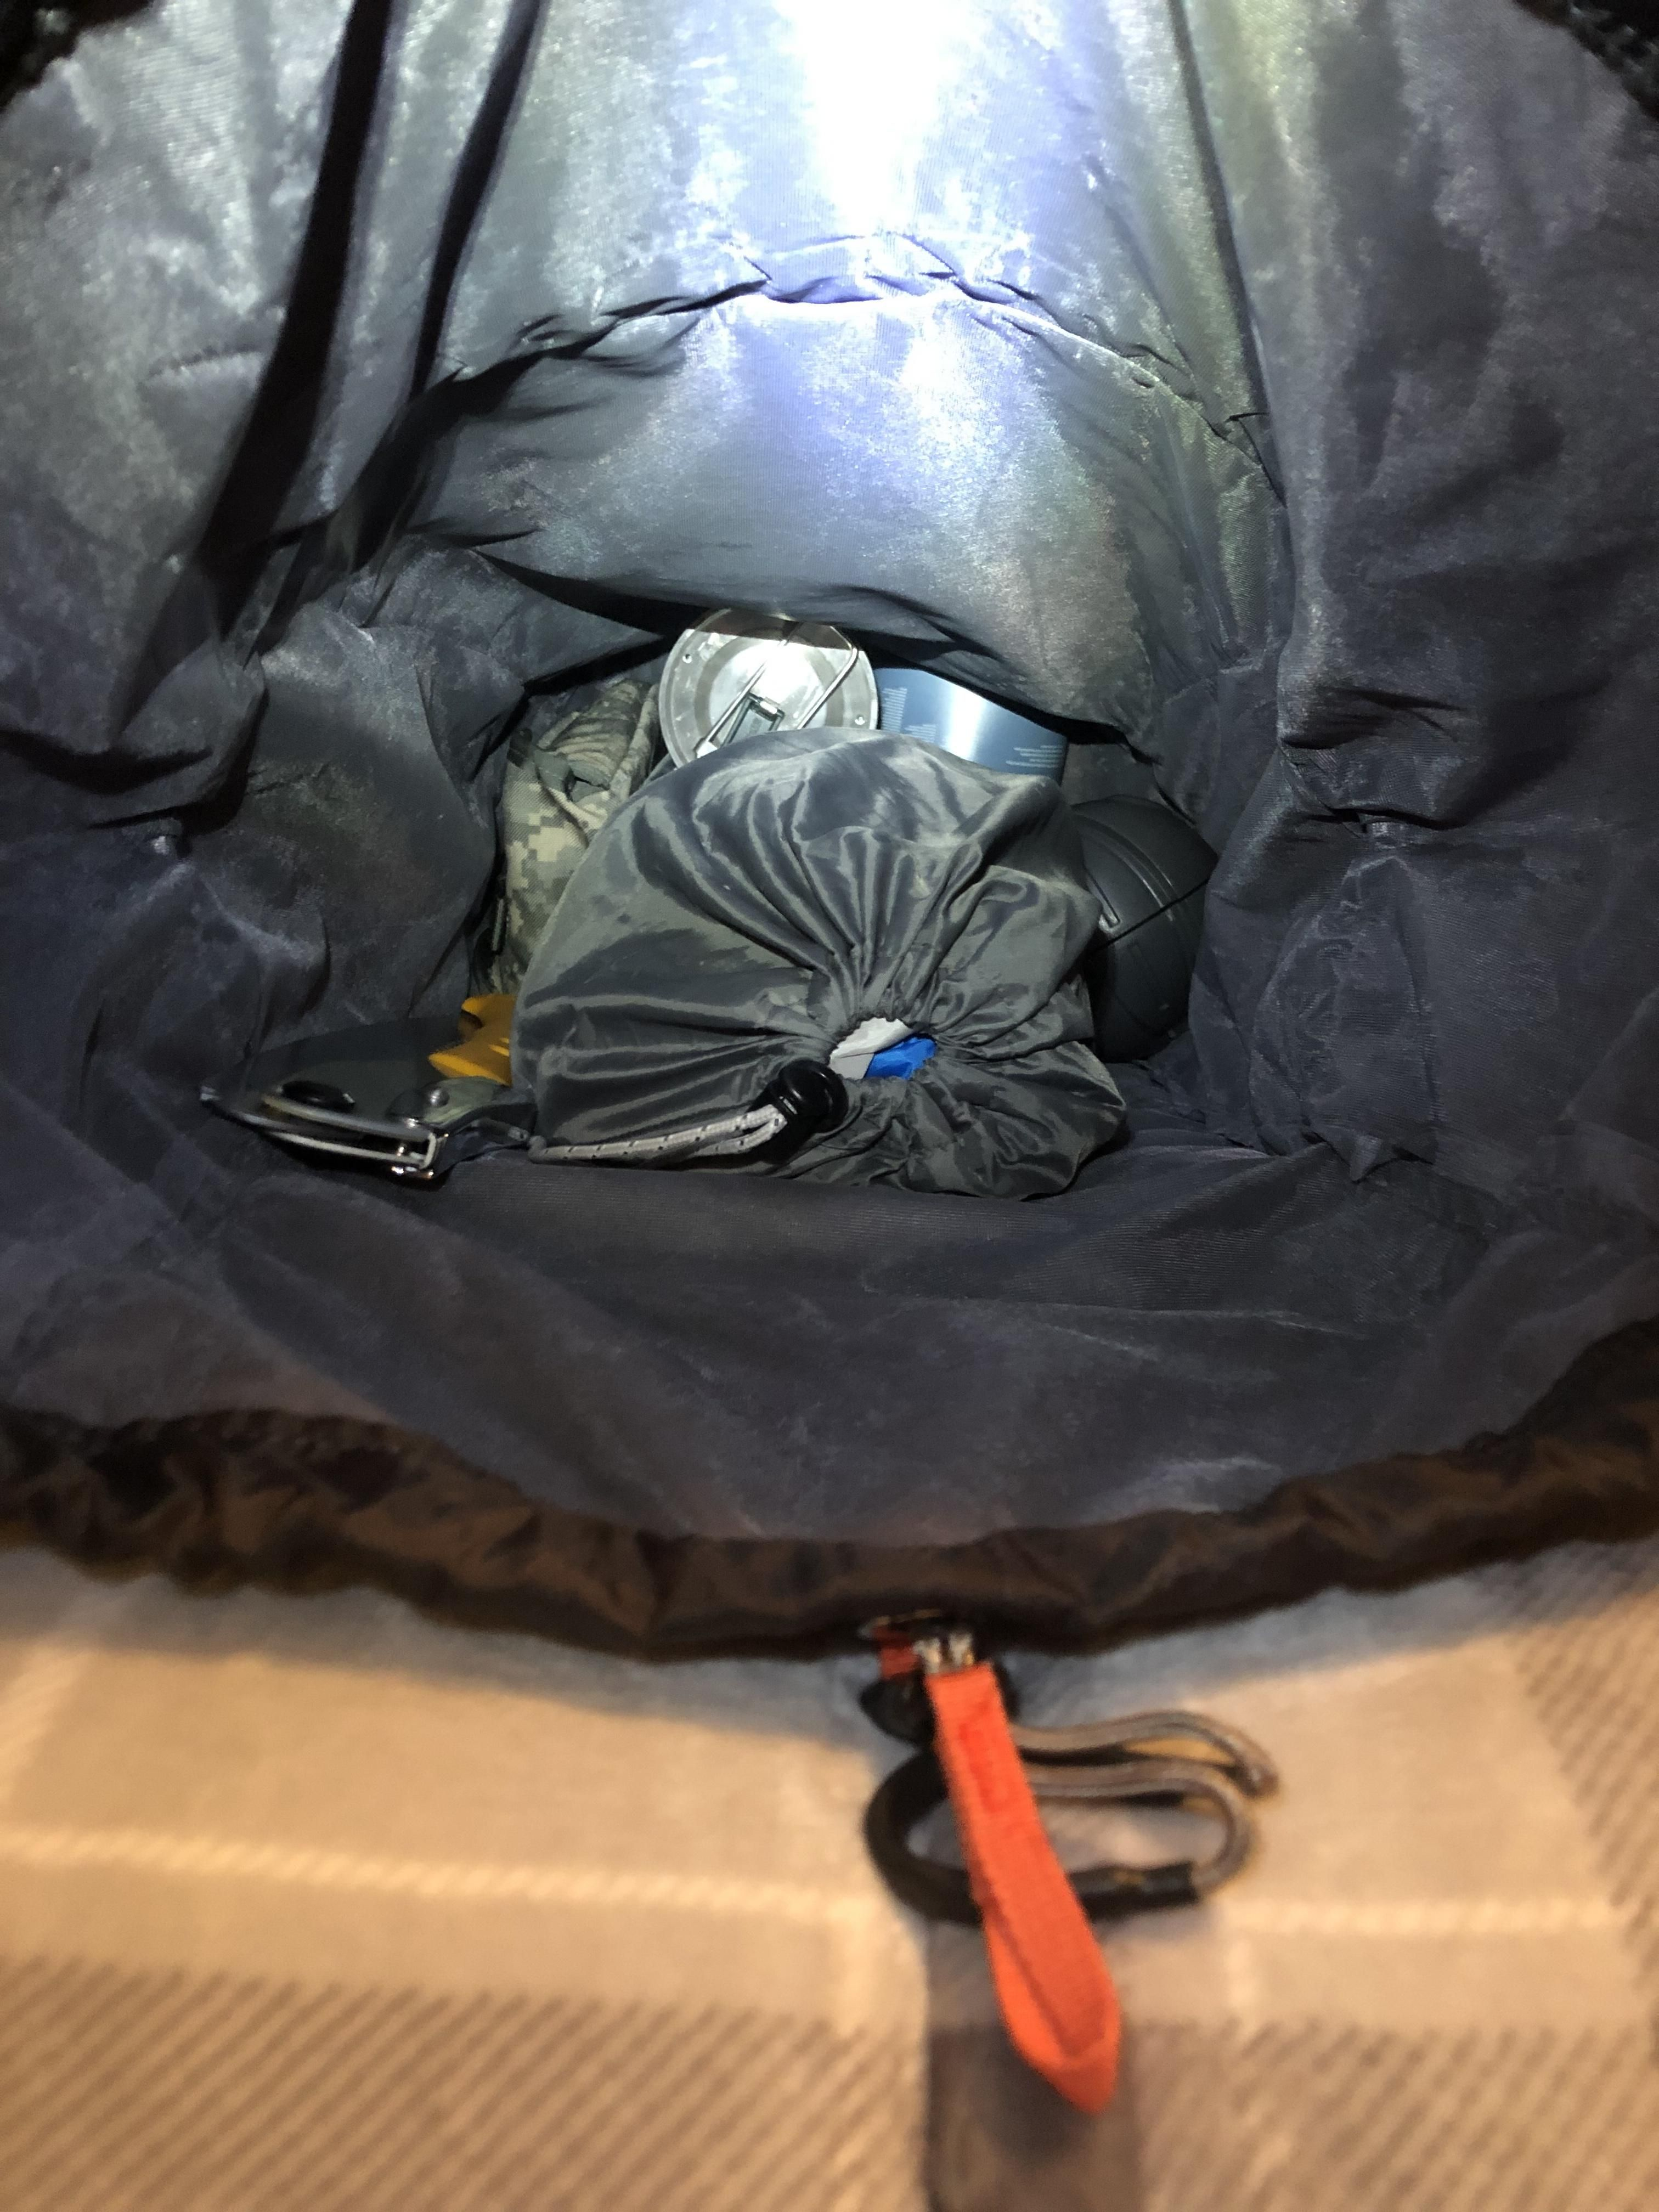 Can anyone help me fit a kitchen sink in my bag? camping